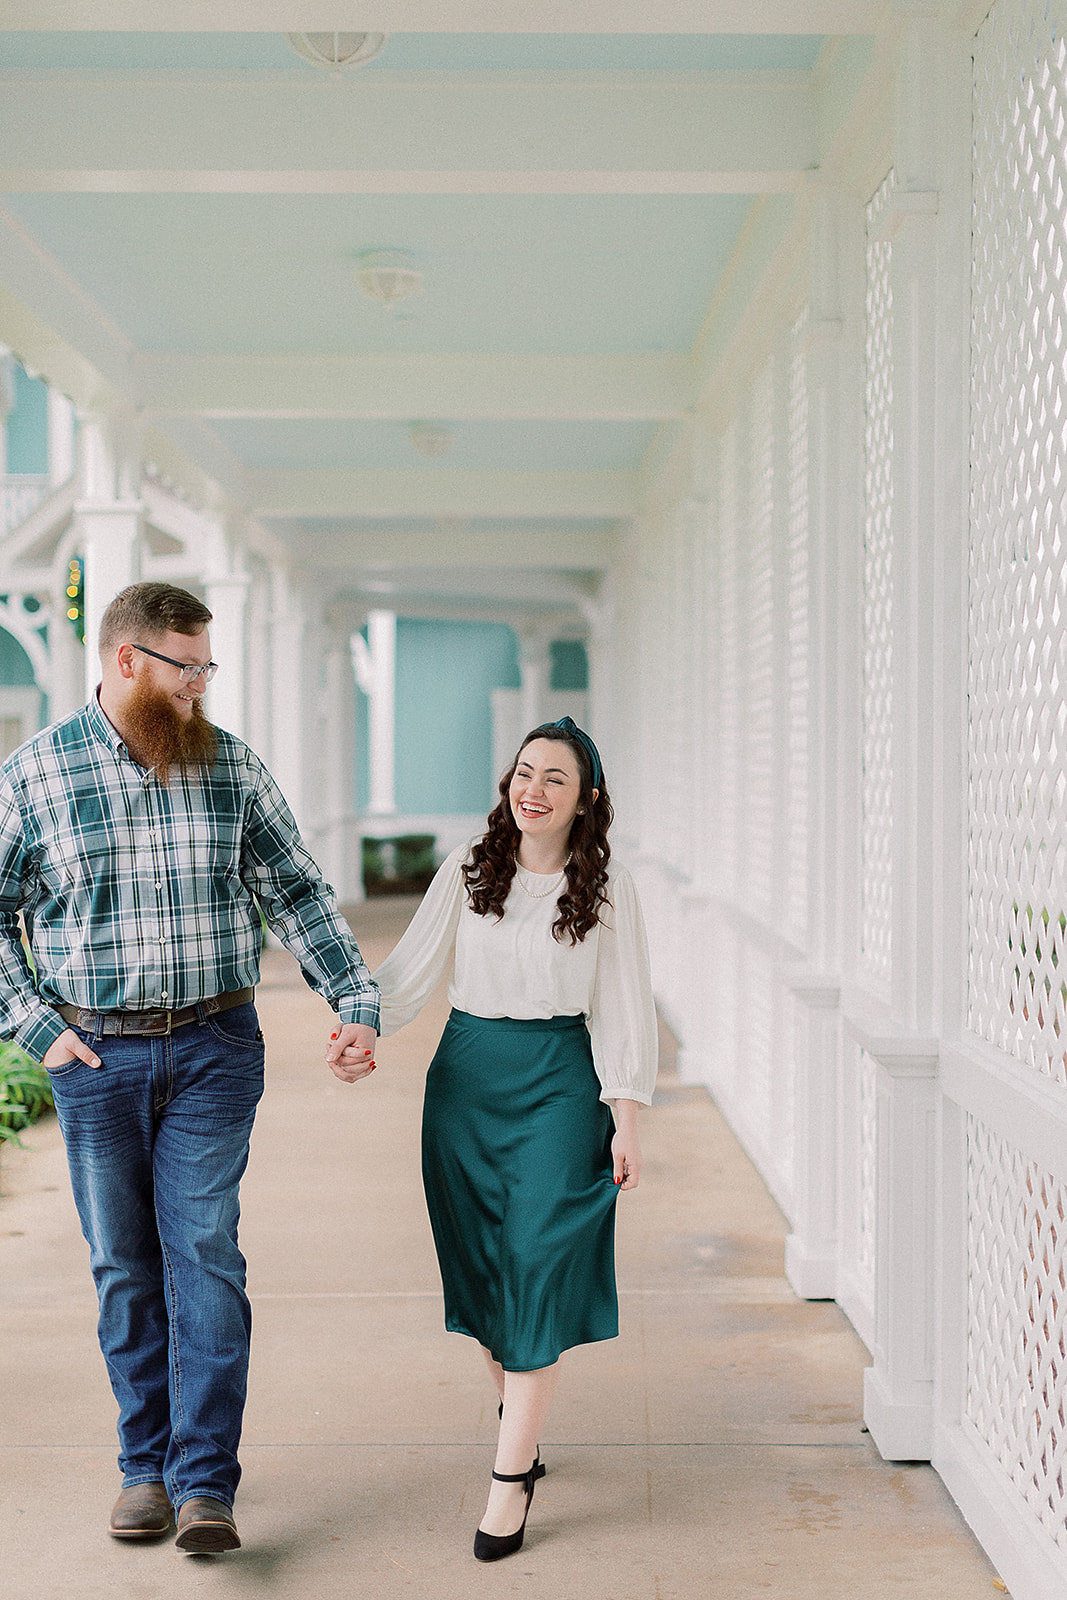 Cassidy_+_Kylor_Proposal_at_Disney_s_Beach_Club_Resort_Photographer_Casie_Marie_Photography-15